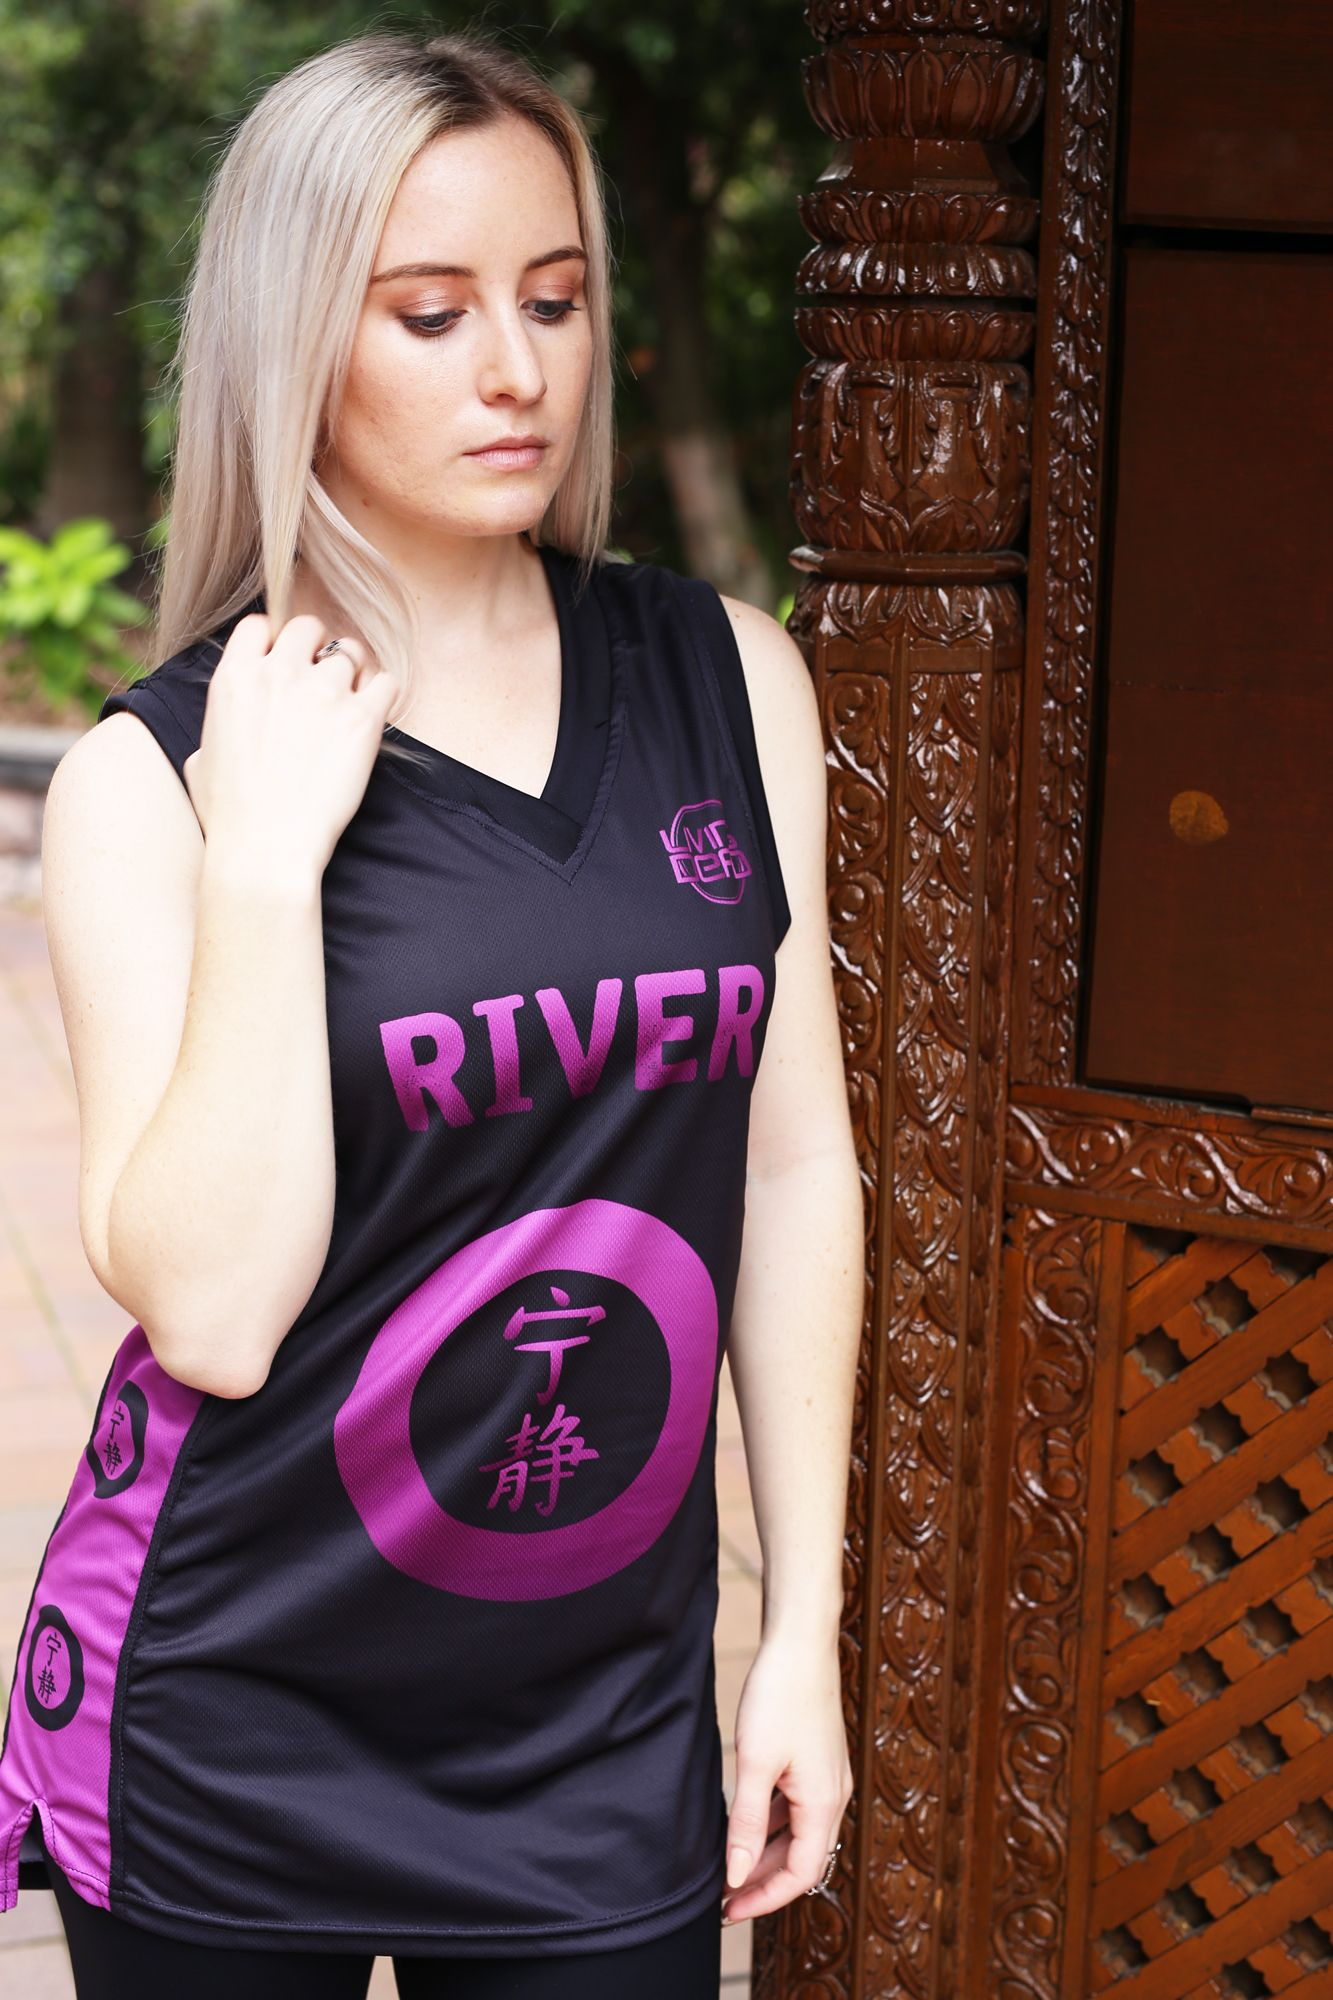 River Women's Rainmaker $75.00 AUD